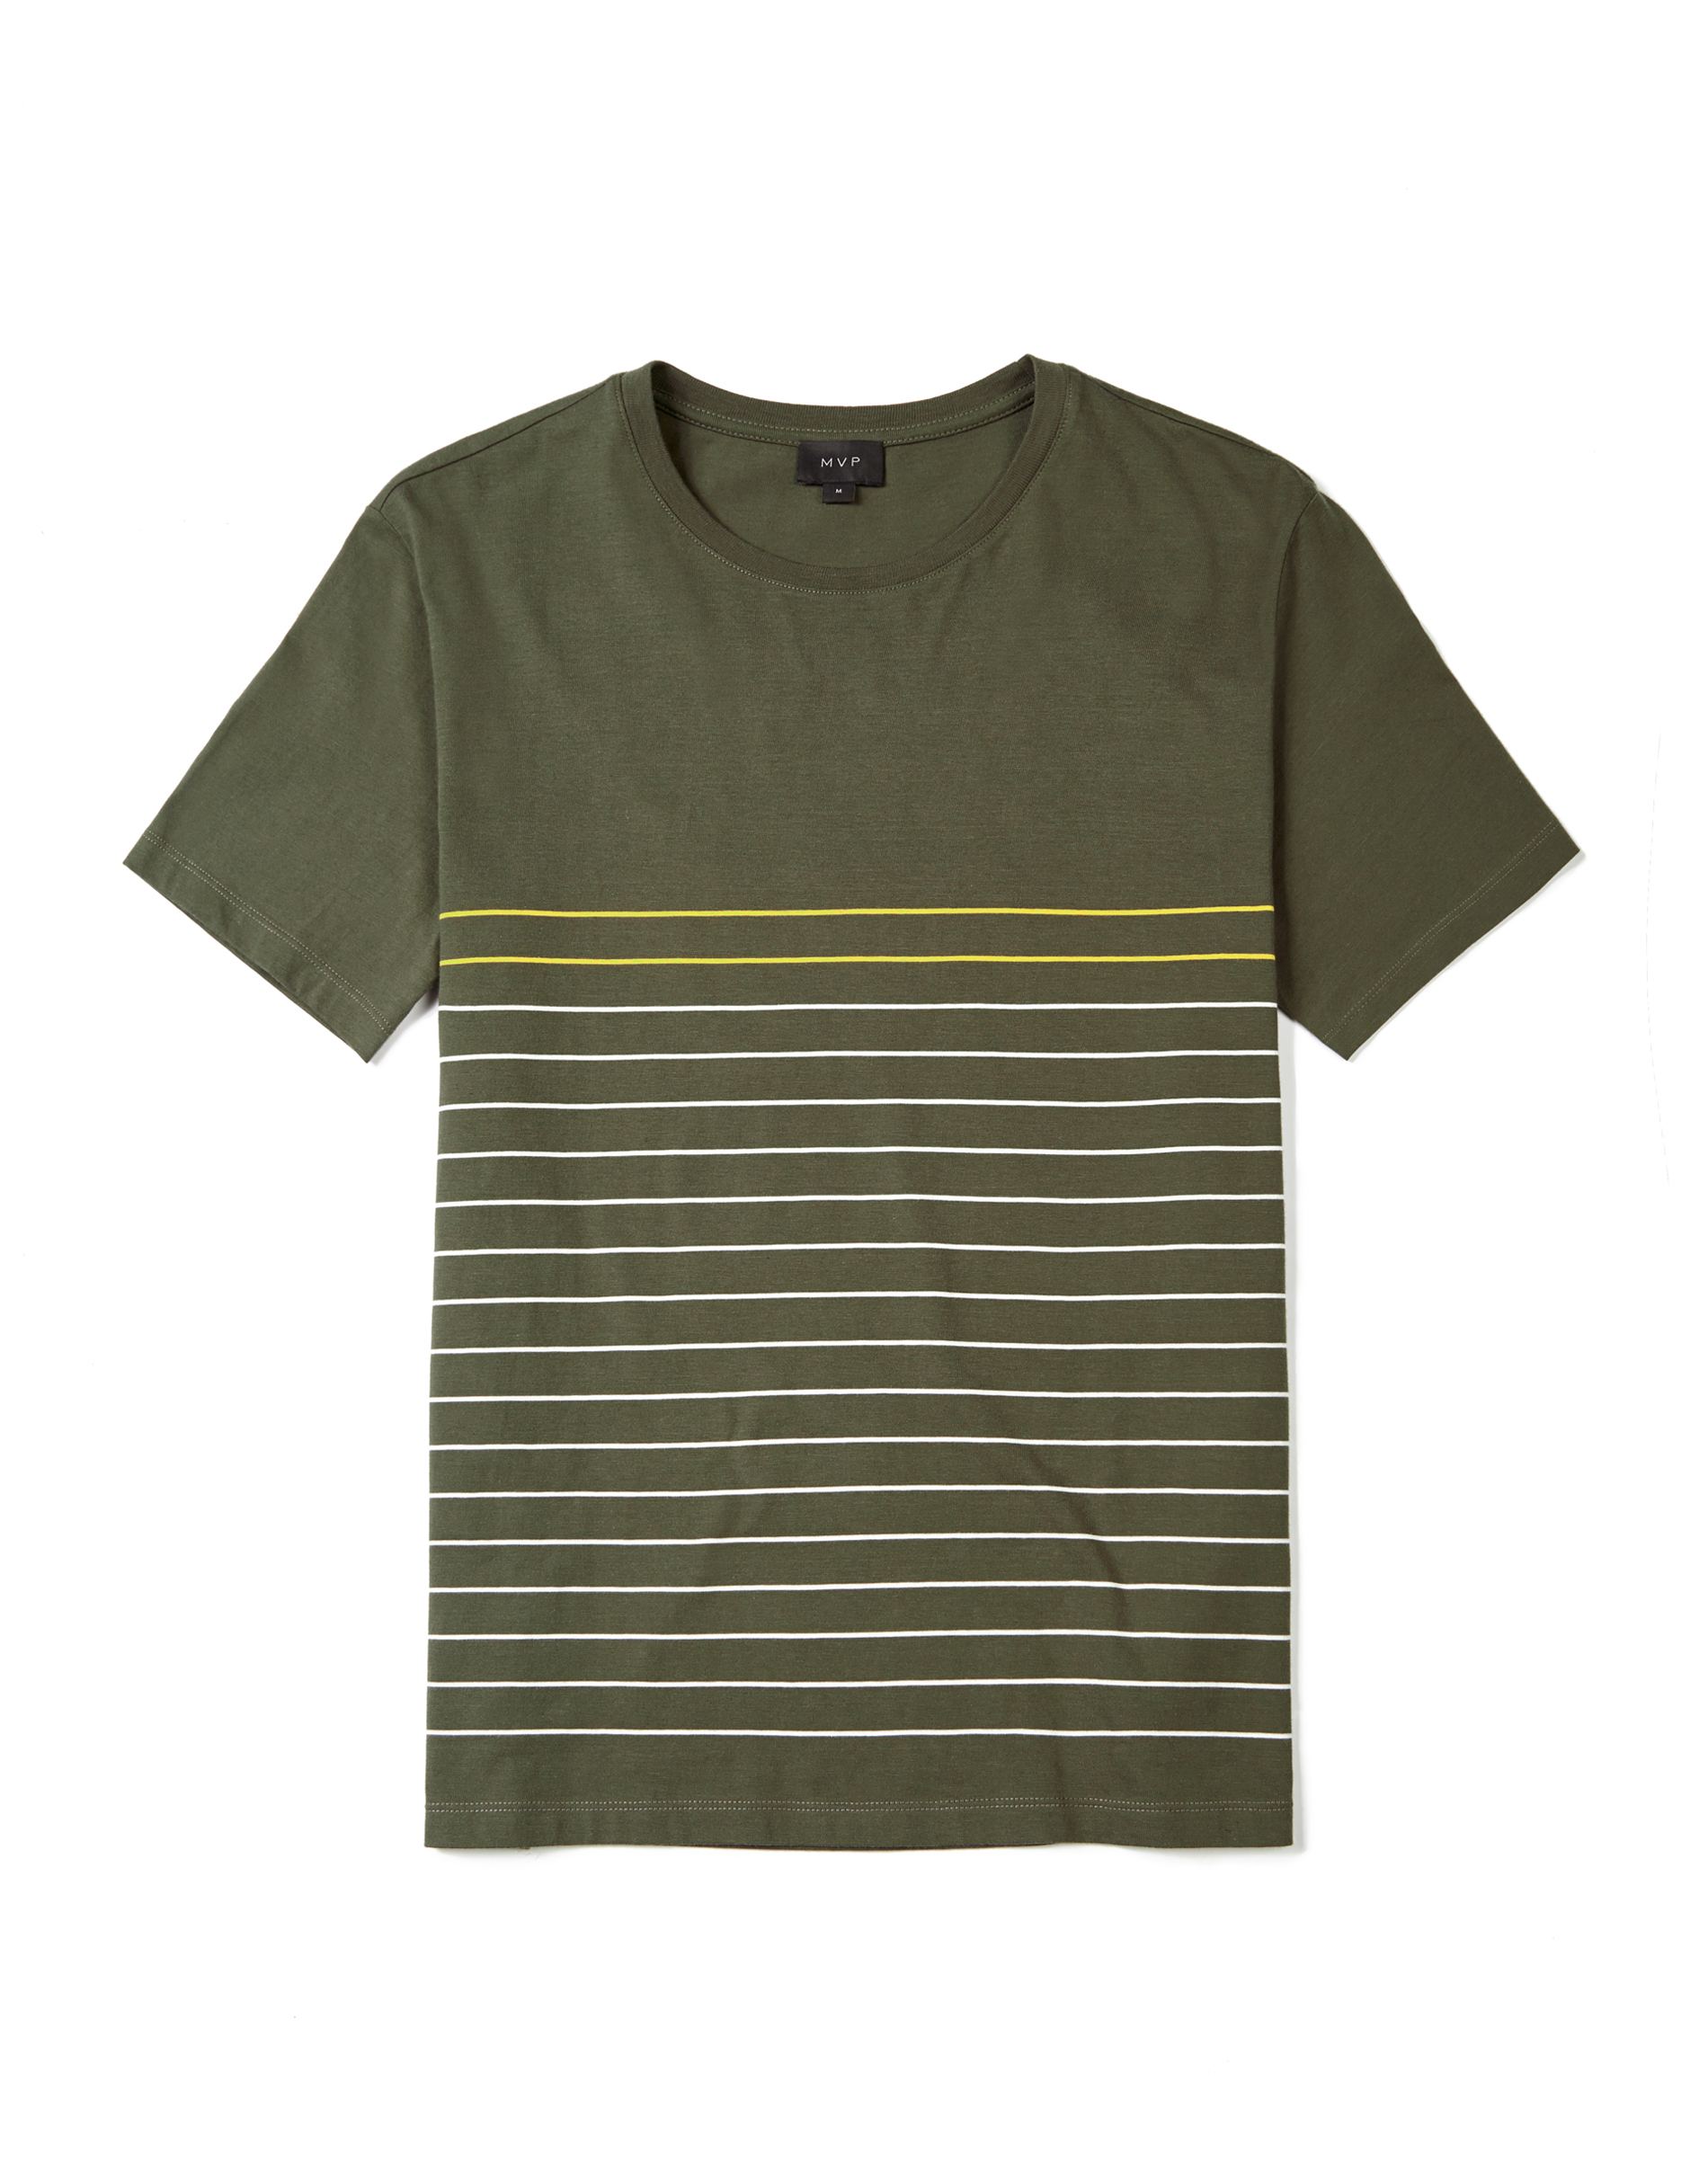 MVP MOSS GREEN Alvington Thin Stripe Crew Neck T-Shirt